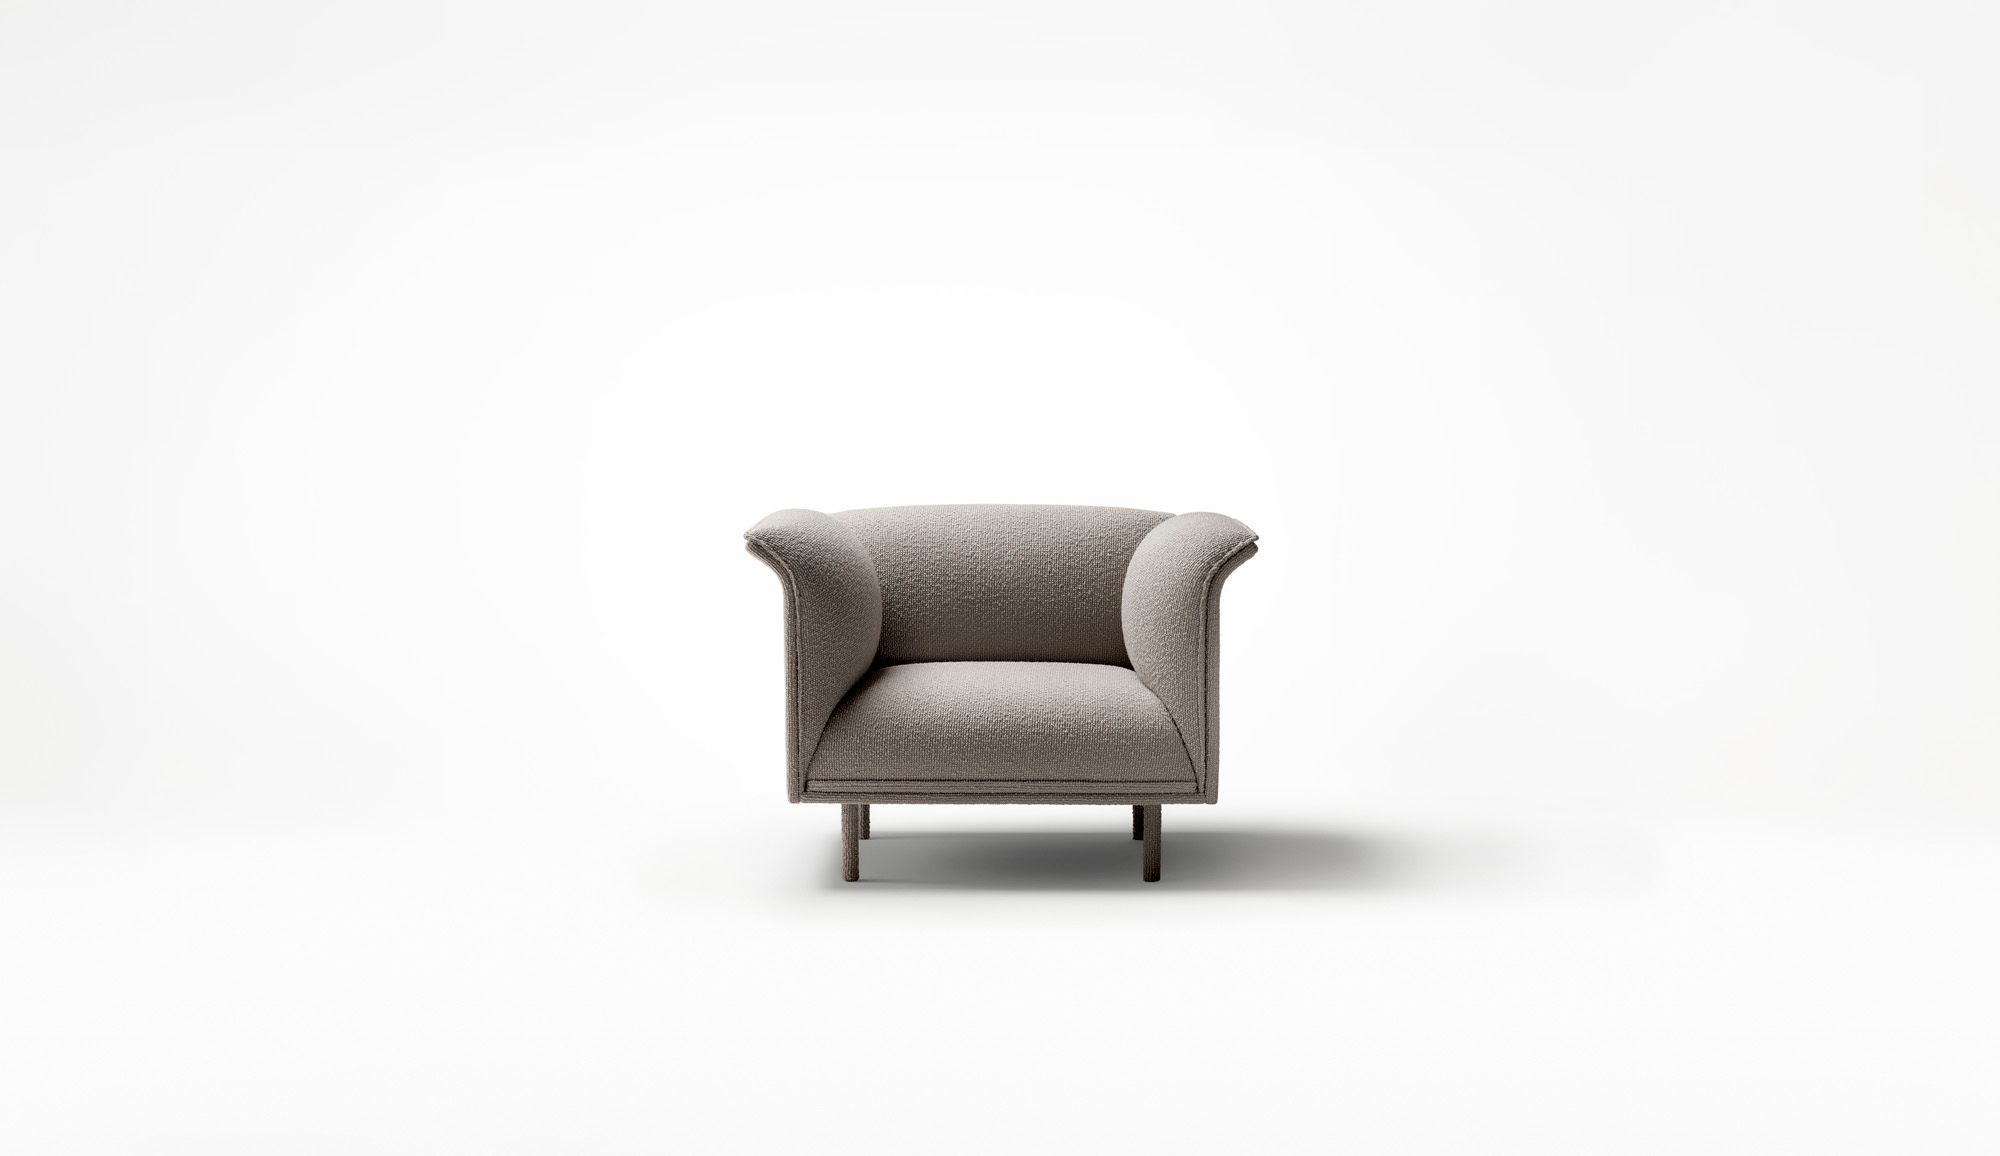 5x Lounge Chair : Noon lounge stylecraft lounging armchair